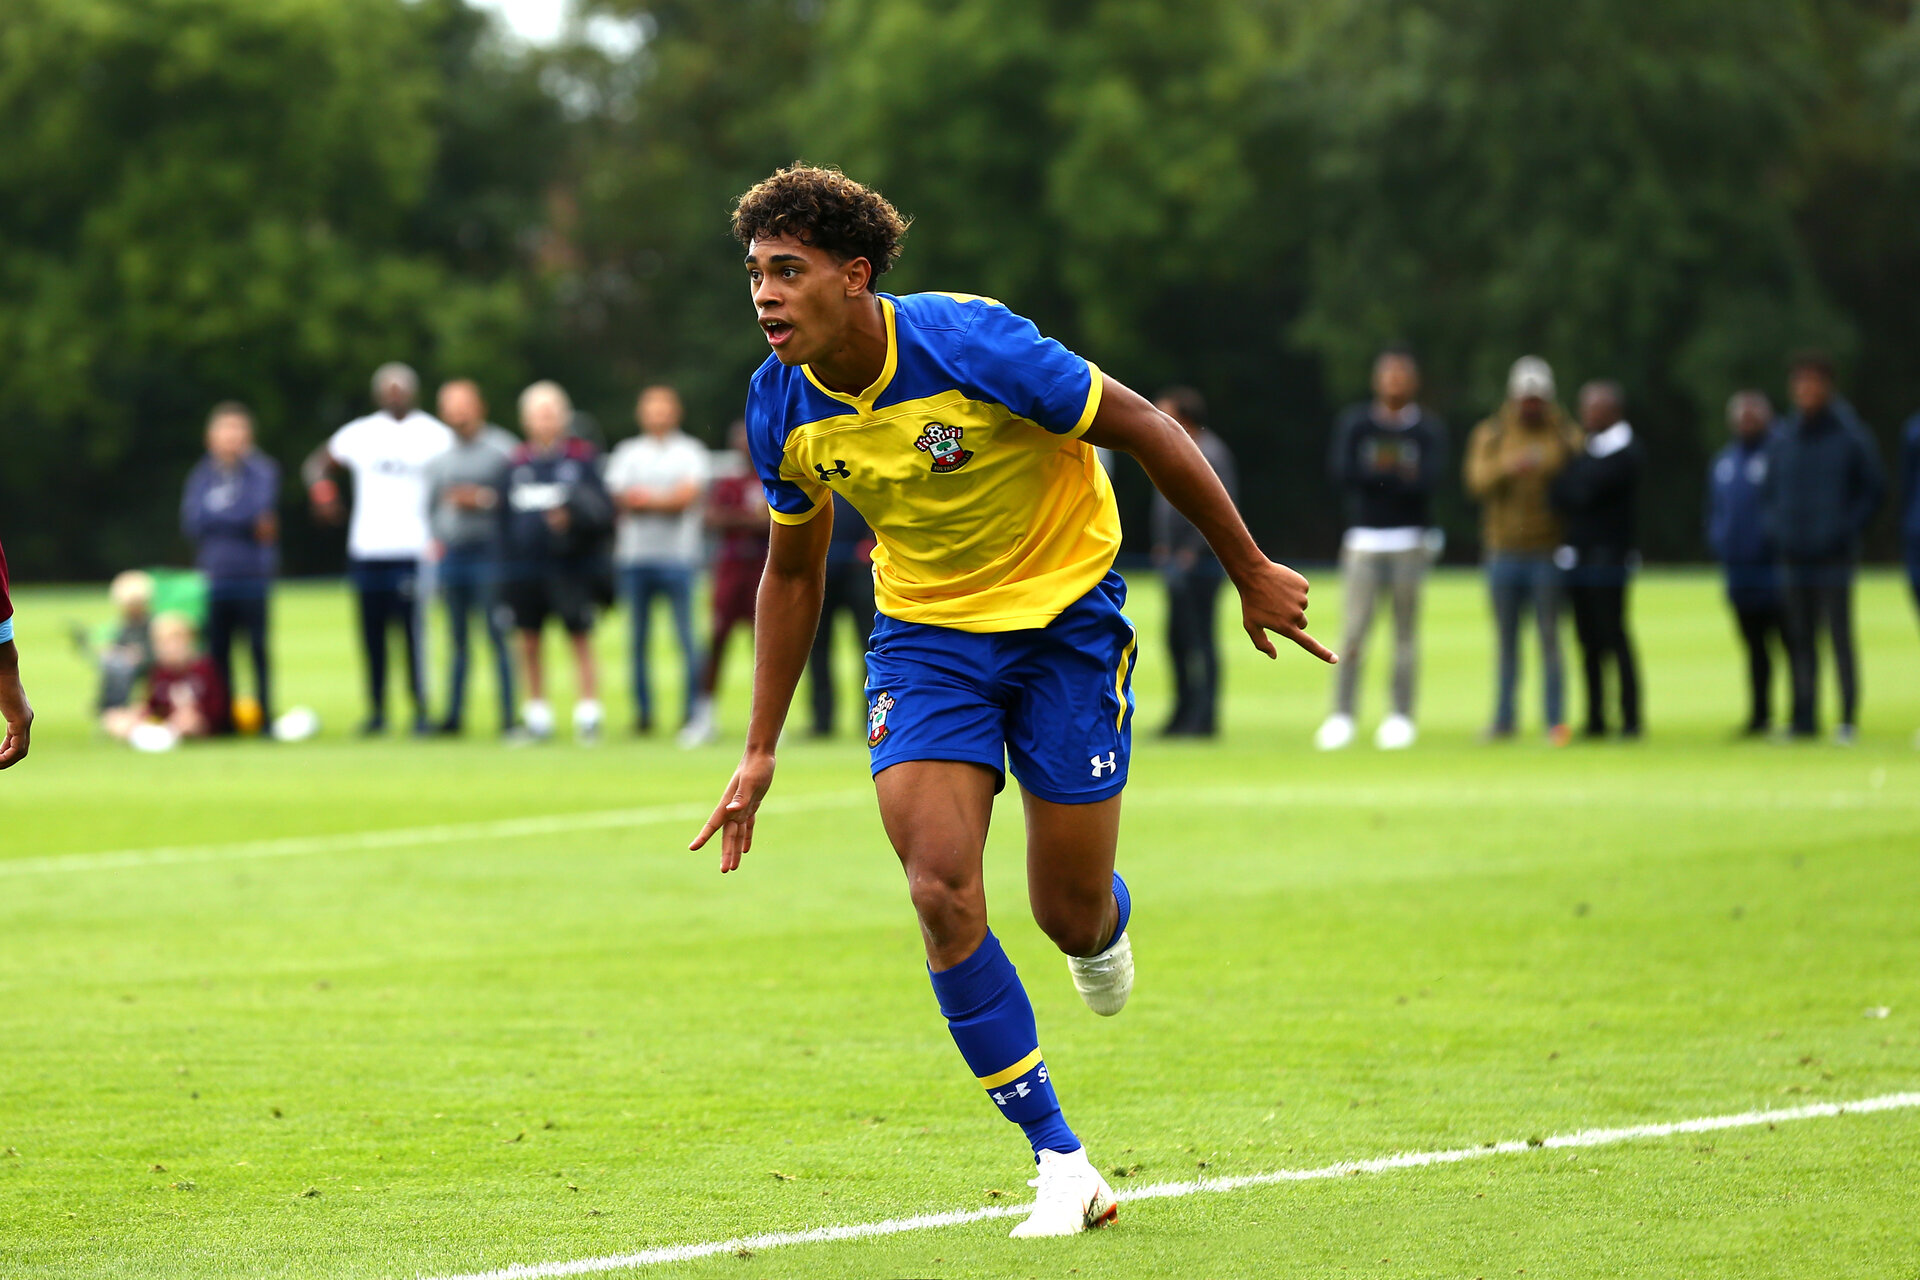 LONDON, ENGLAND - AUGUST 18: Christian Norton scores during an U18 Premier League match between  Southampton FC and West Ham United at Little Heath Training Ground on August 16, 2018 in London, England. (Photo by James Bridle - Southampton FC/Southampton FC via Getty Images)